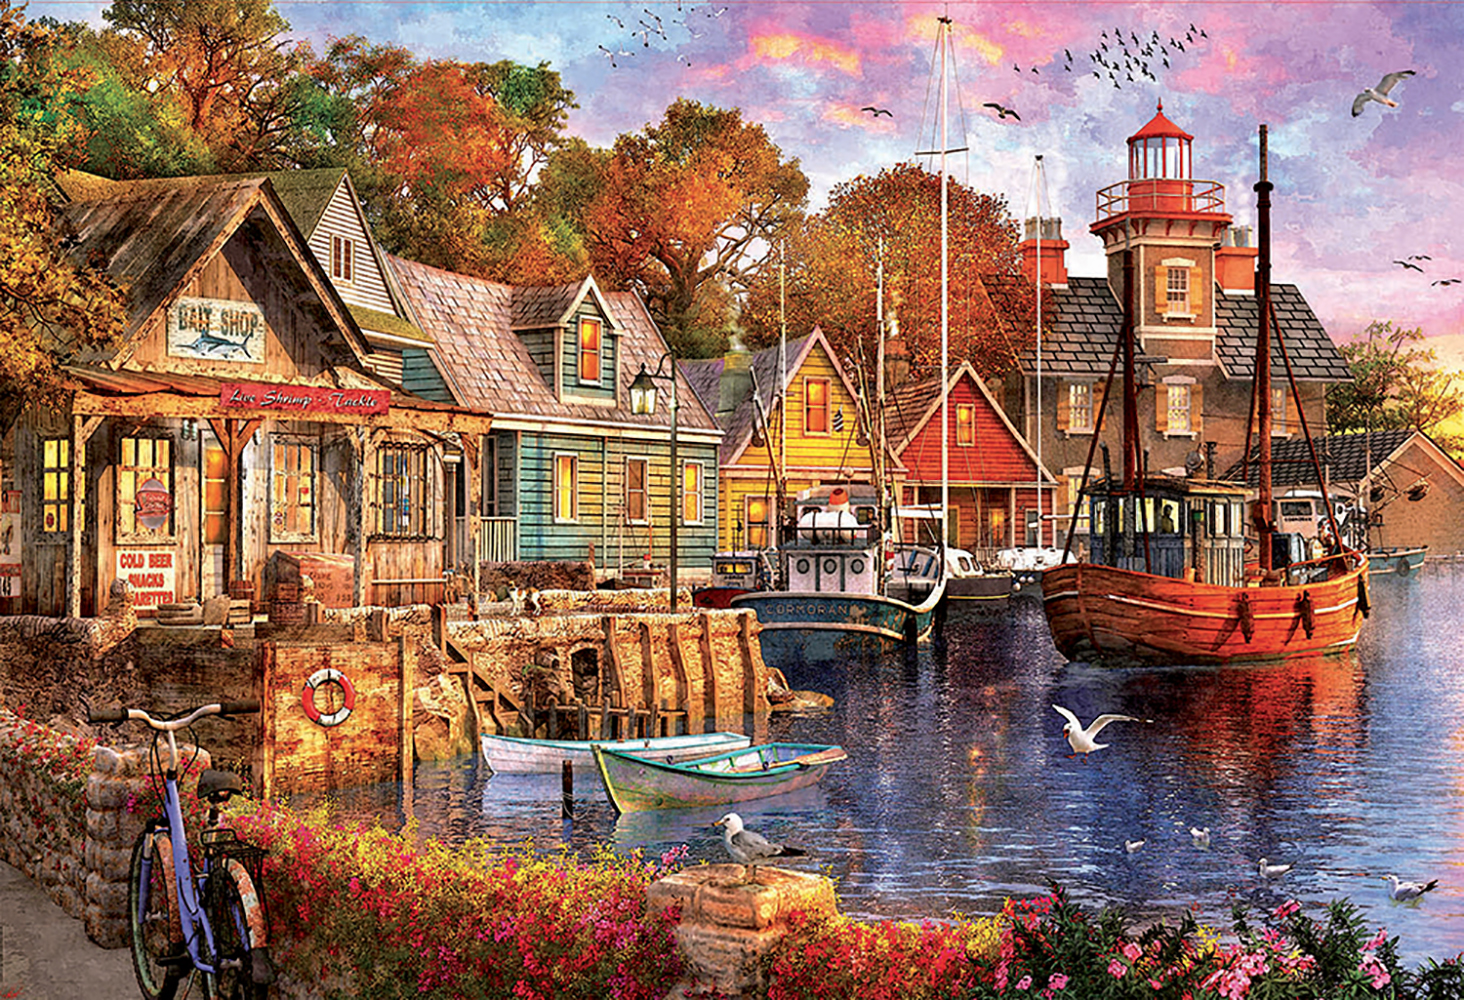 Puzzle 5000 pieces - The Harbour Evening